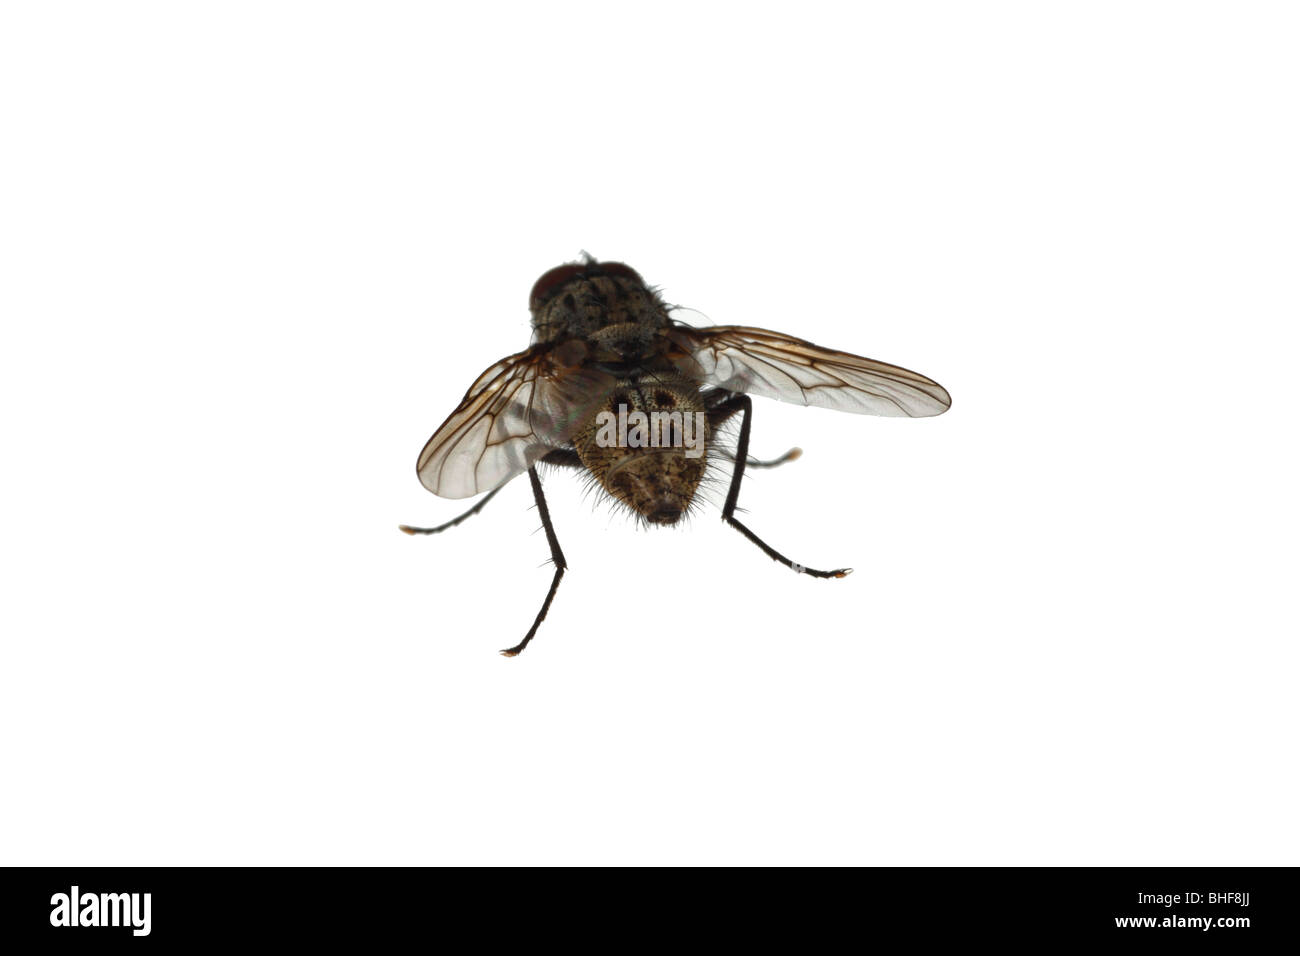 House fly (family Muscidae). Live insect photographed against a white background on a portable studio. - Stock Image